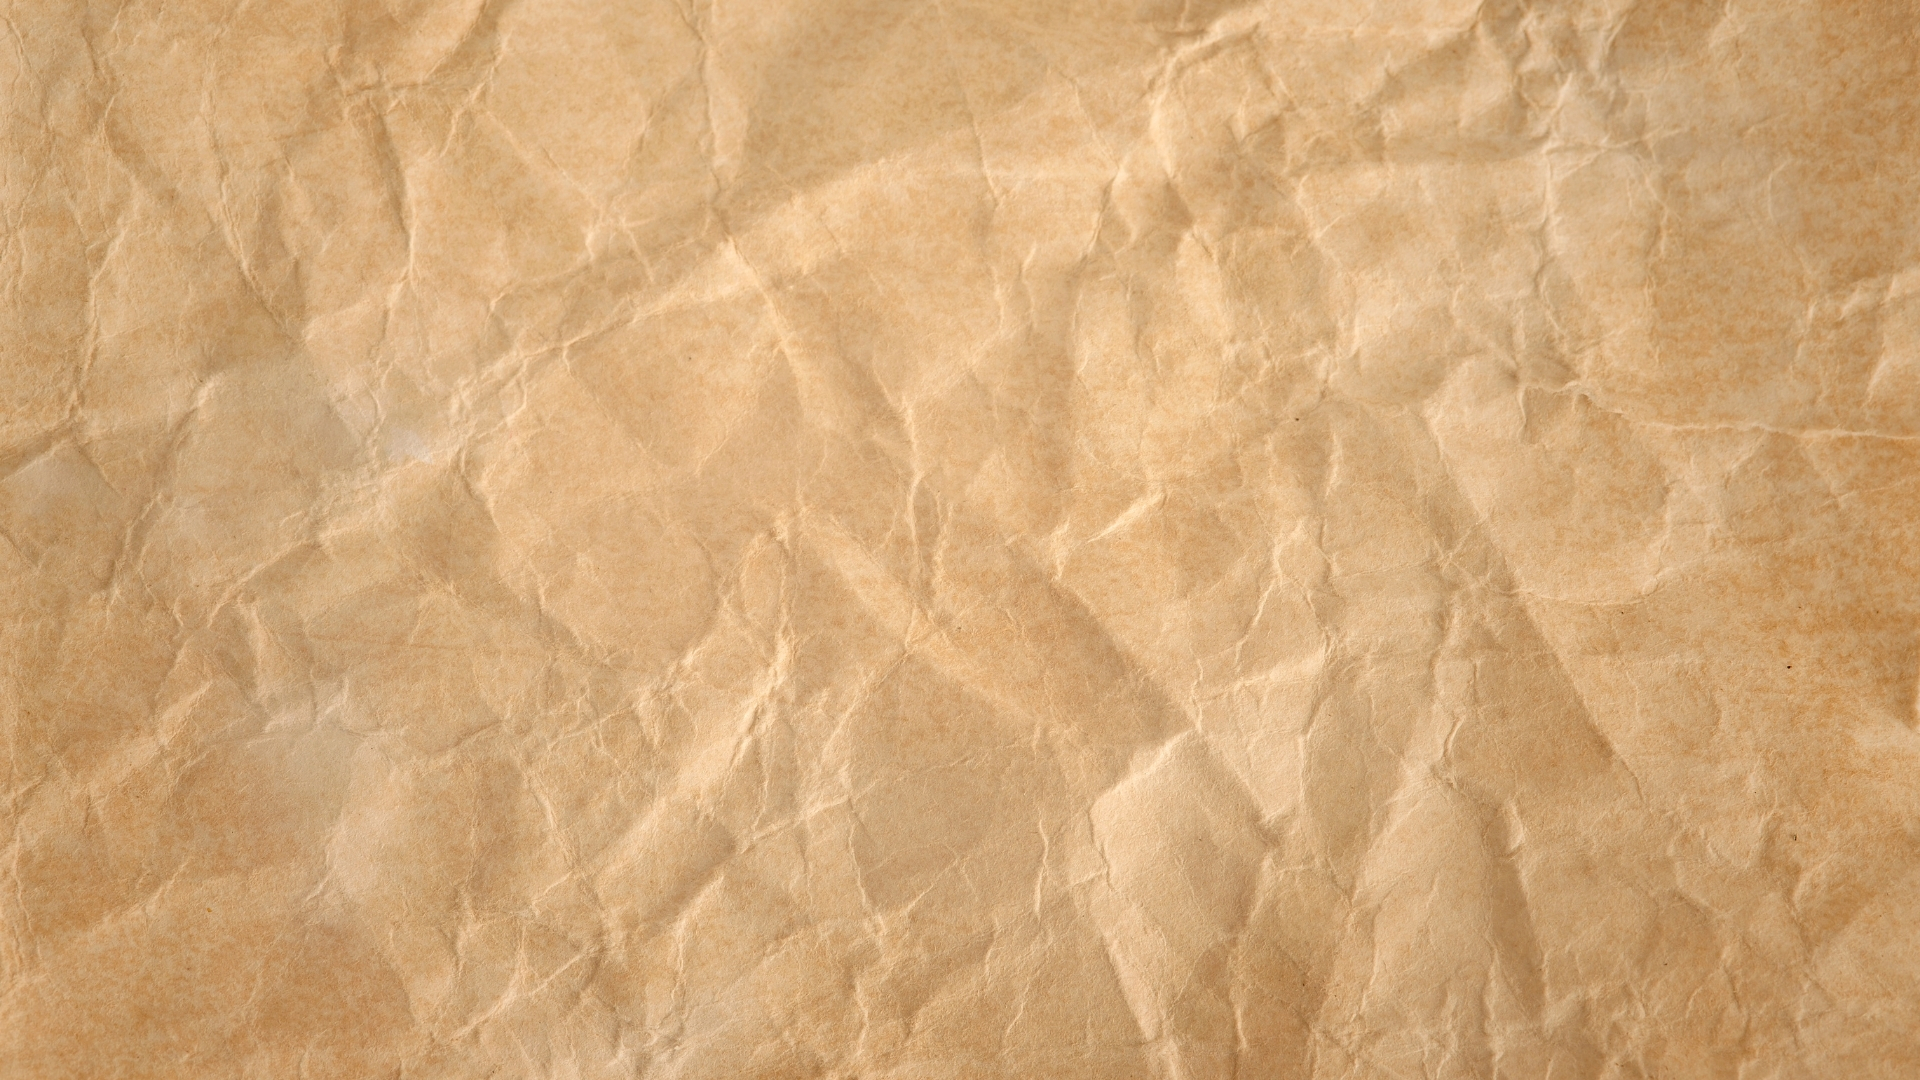 Aged paper backgrounds